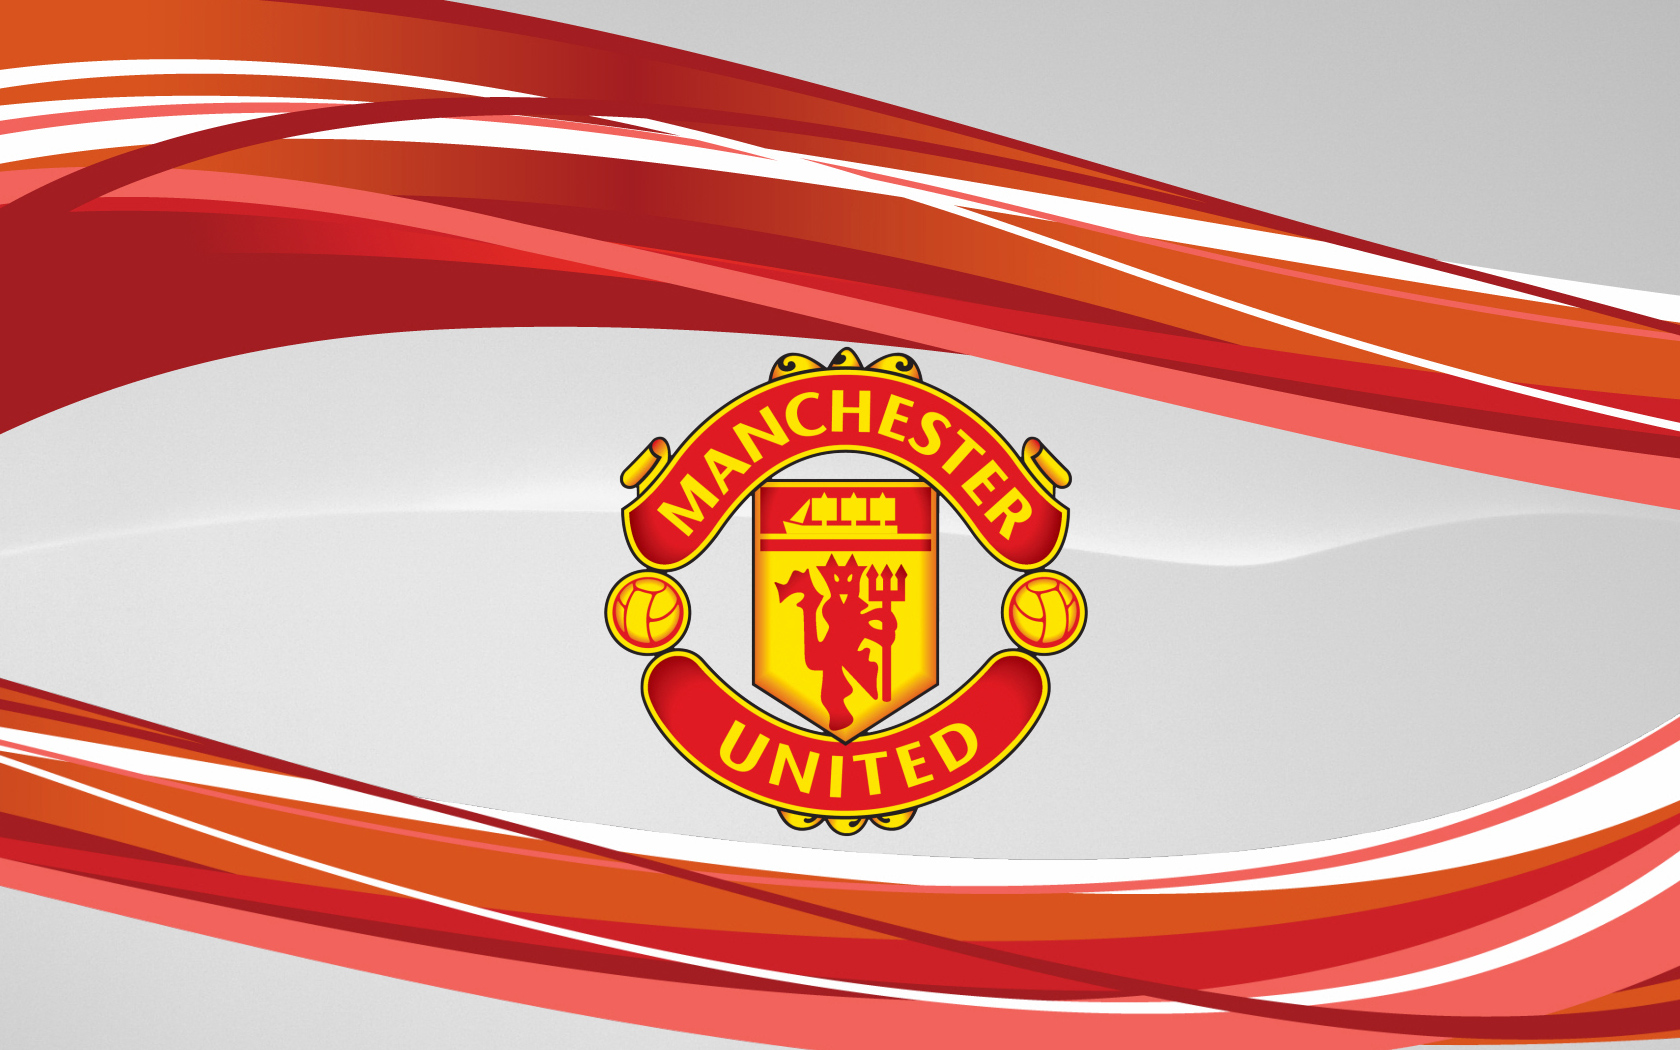 1680x1050px manchester united iphone wallpaper wallpapersafari united wallpaper glory manchester united wallpaper manchester united 1680x1050 voltagebd Choice Image